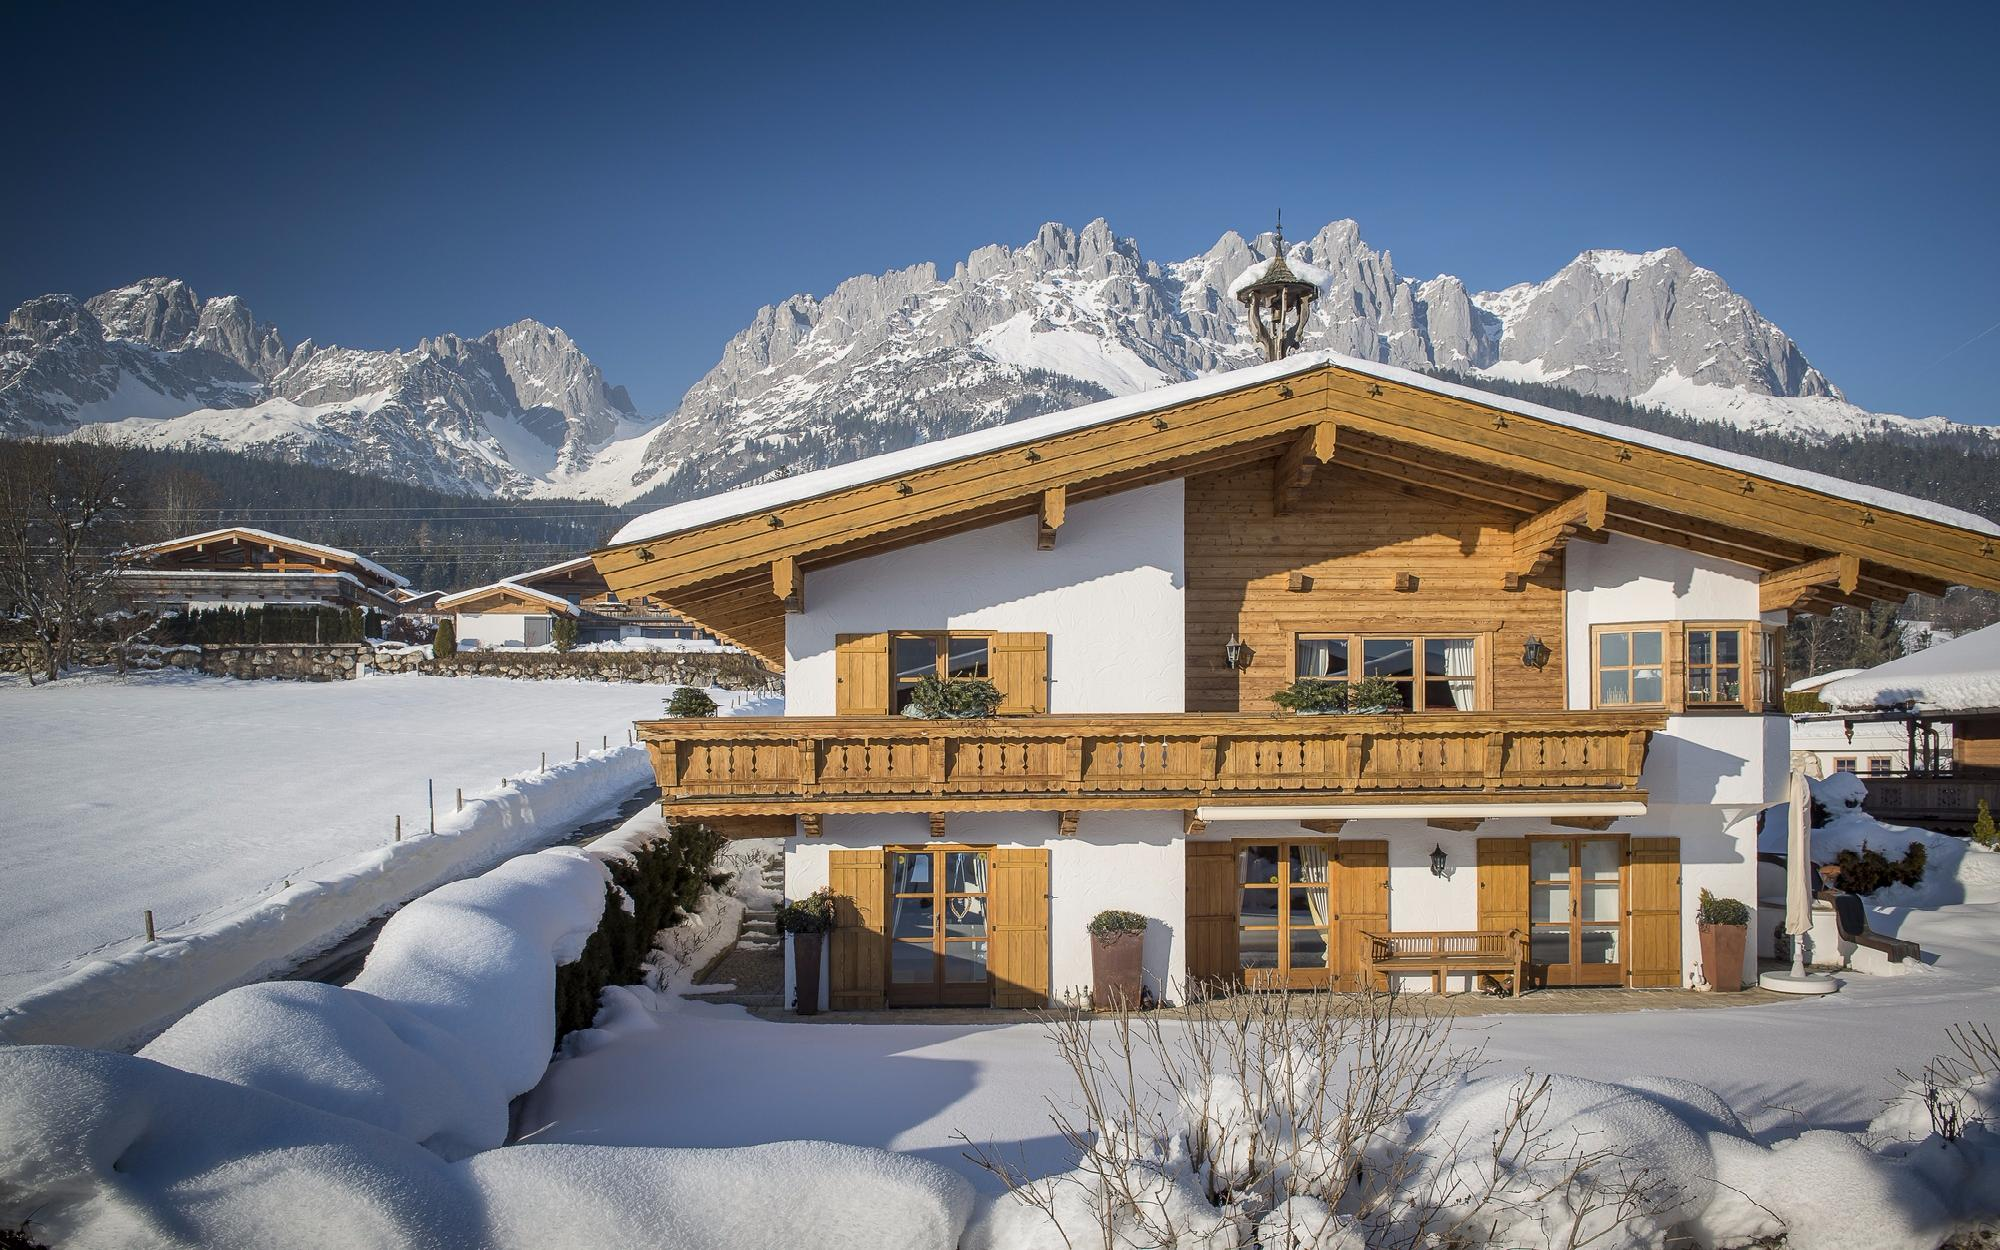 Spacious and high-quality Tyrolean country house in Going for Sale - Austria - Tirol